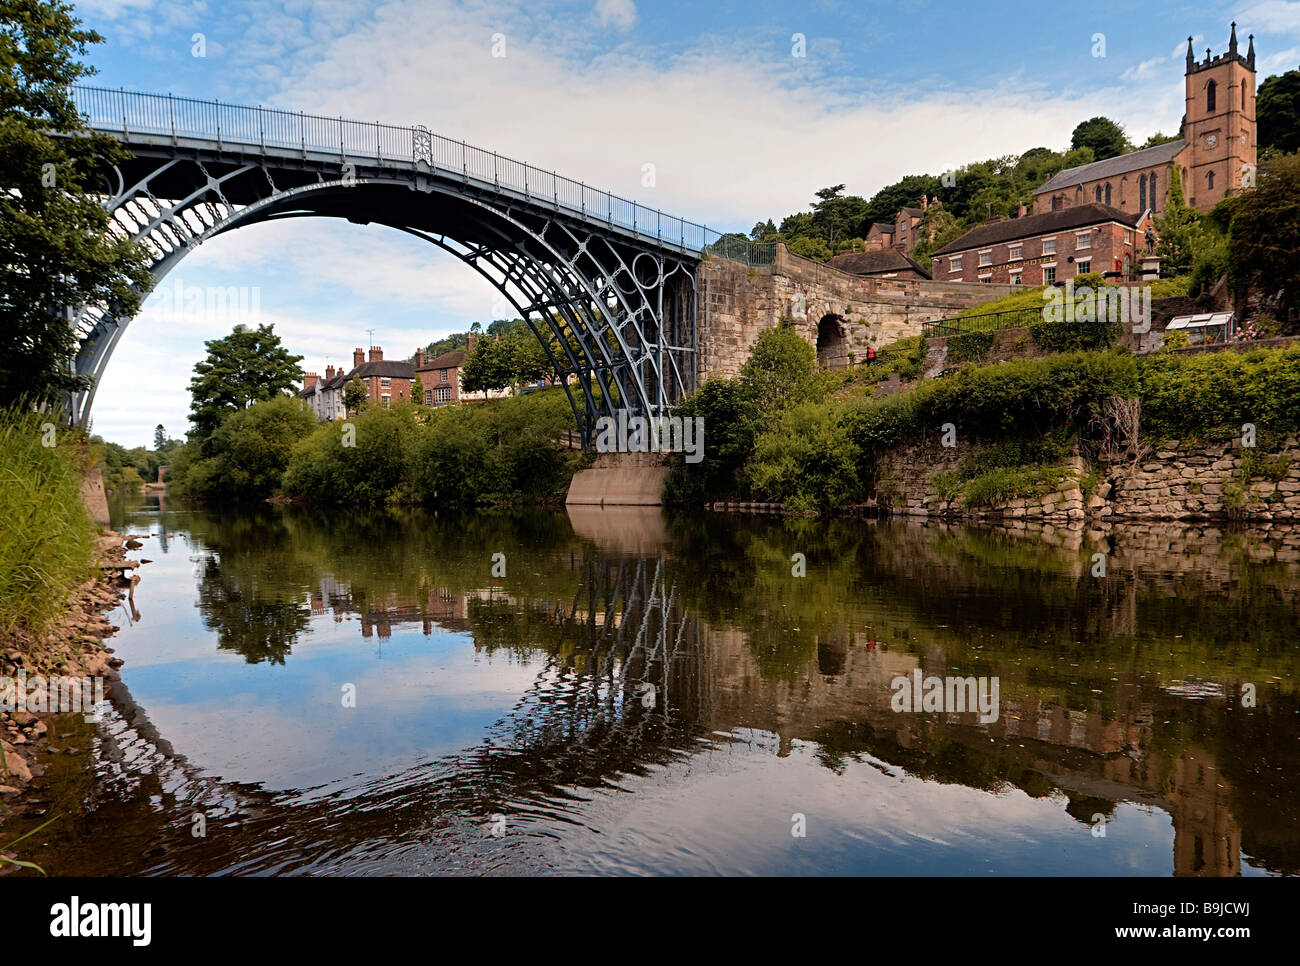 Ironbridge crossing the river Severn, first iron bridge worldwide, built by Abraham Darby in 1779, in Telford, Shropshire, - Stock Image